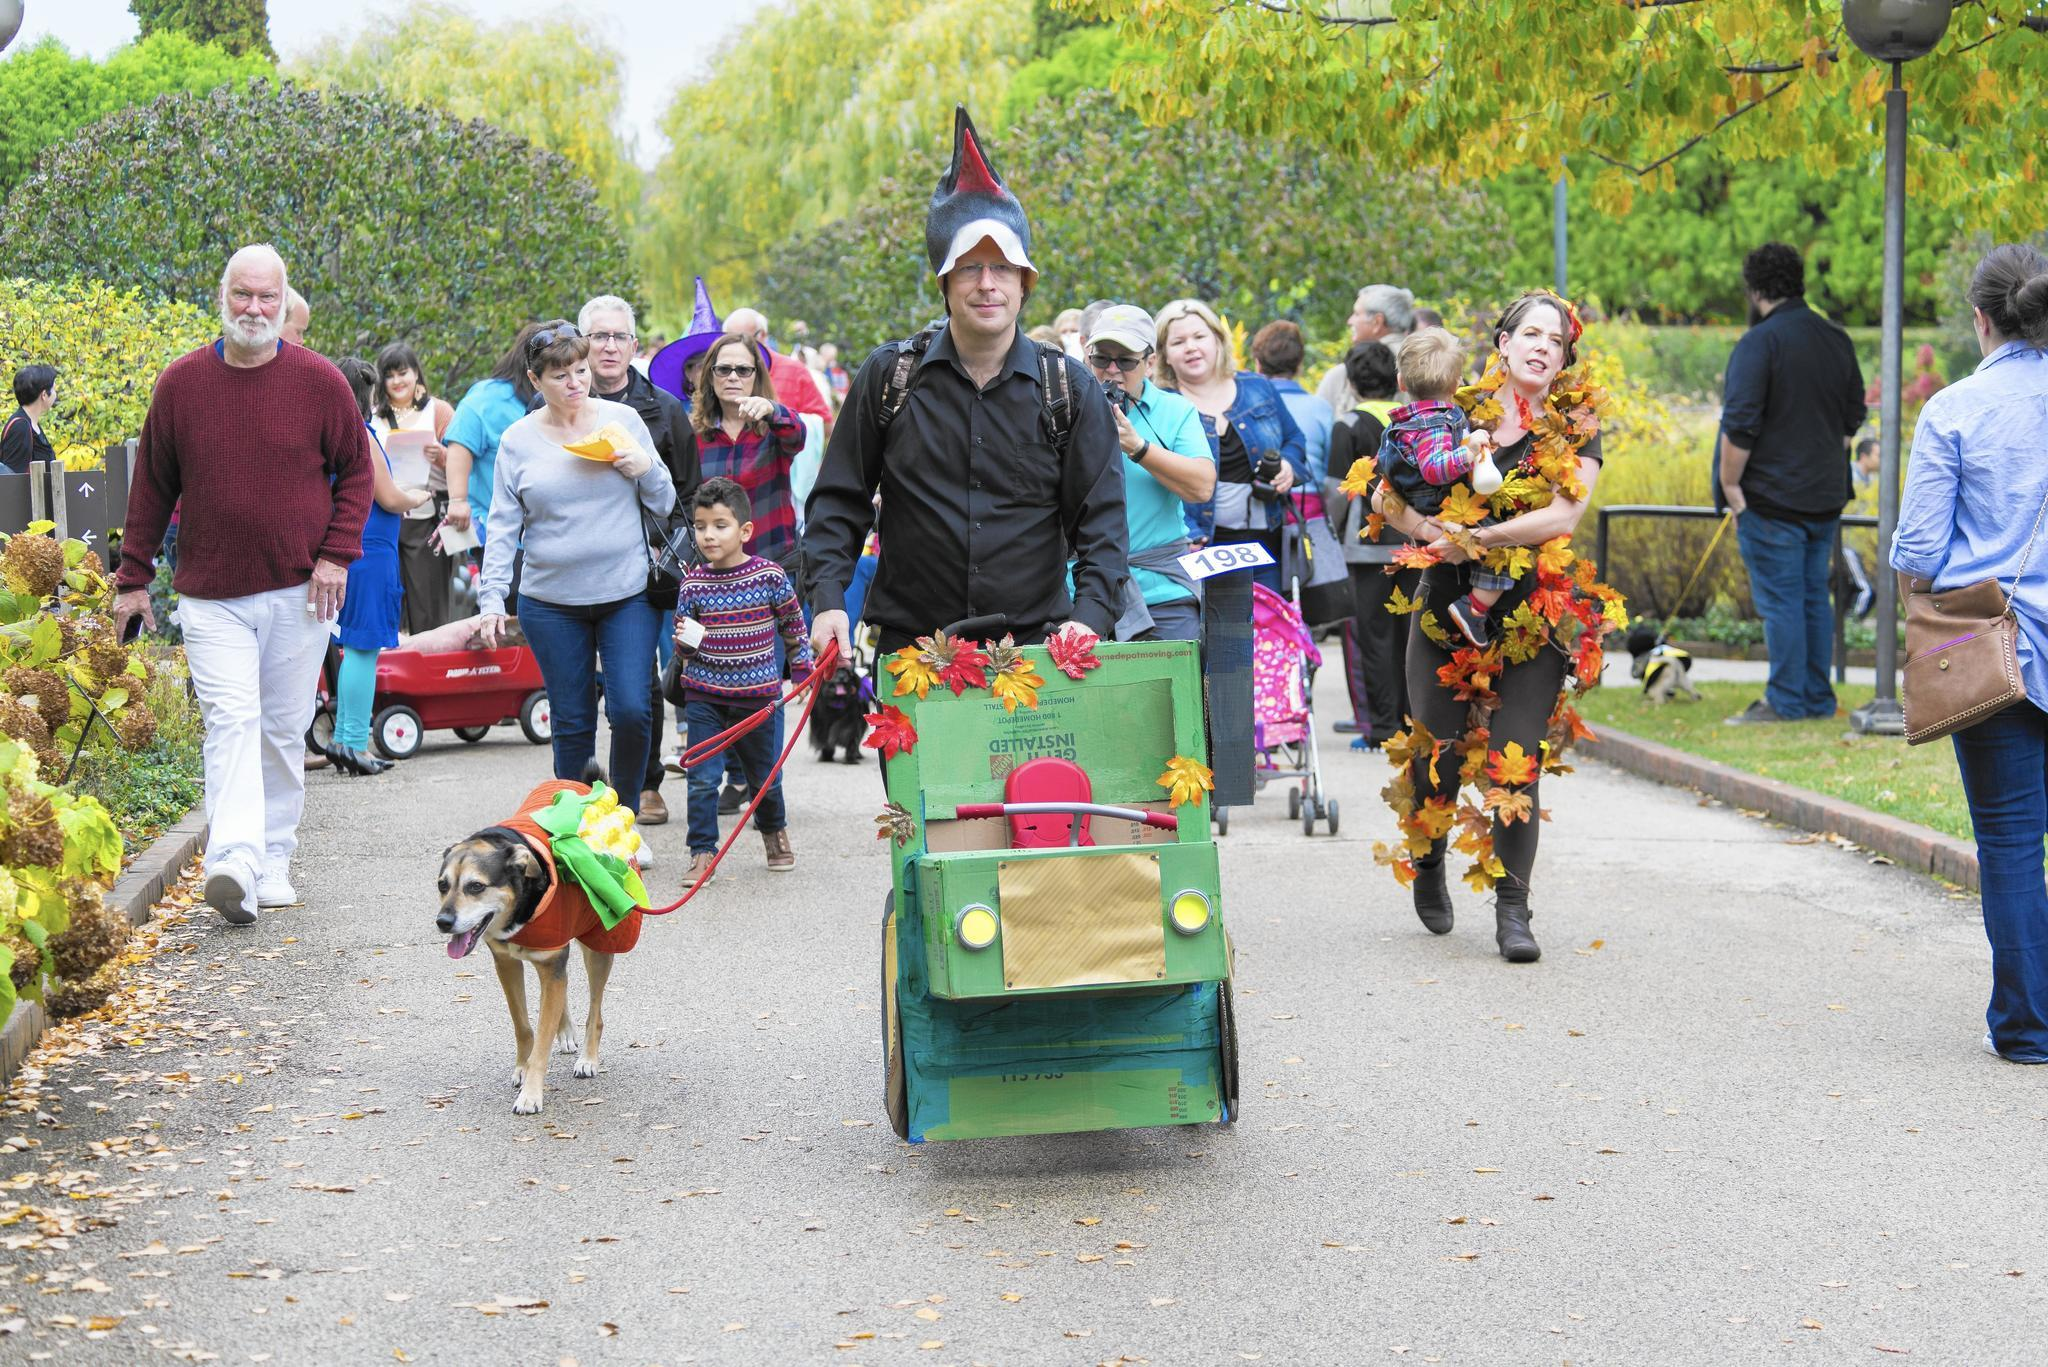 Say boo! Your guide to 2017 Halloween fun - Northbrook Star